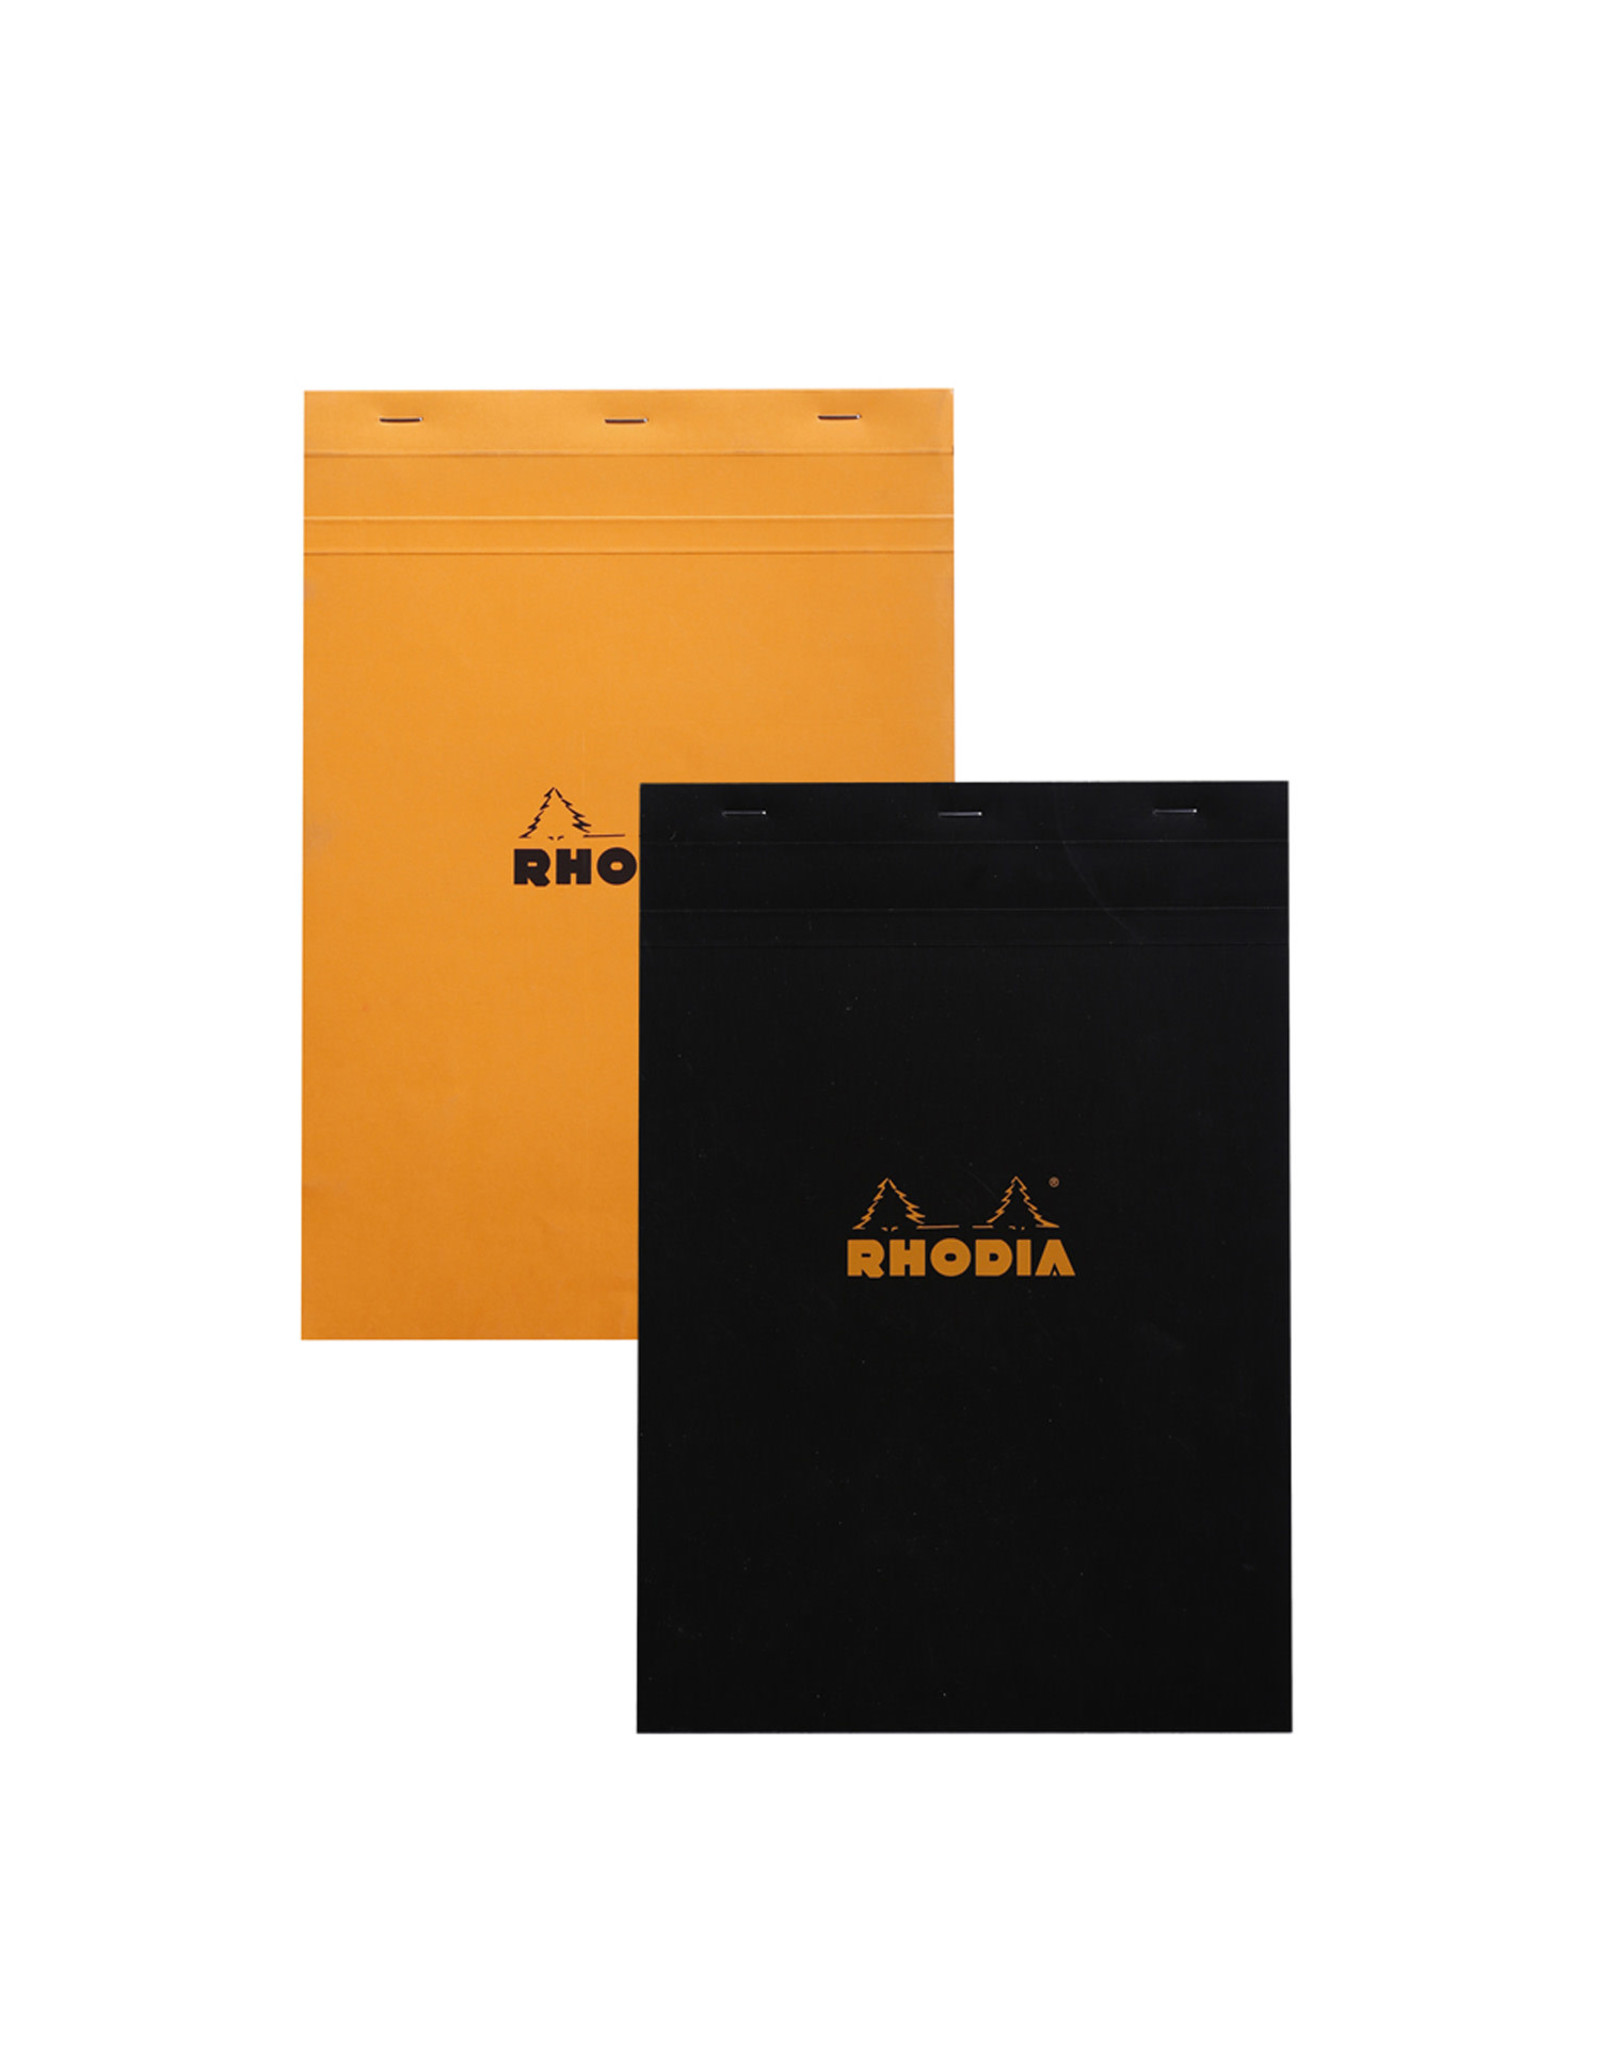 Rhodia Pad No. 18, orange, grid